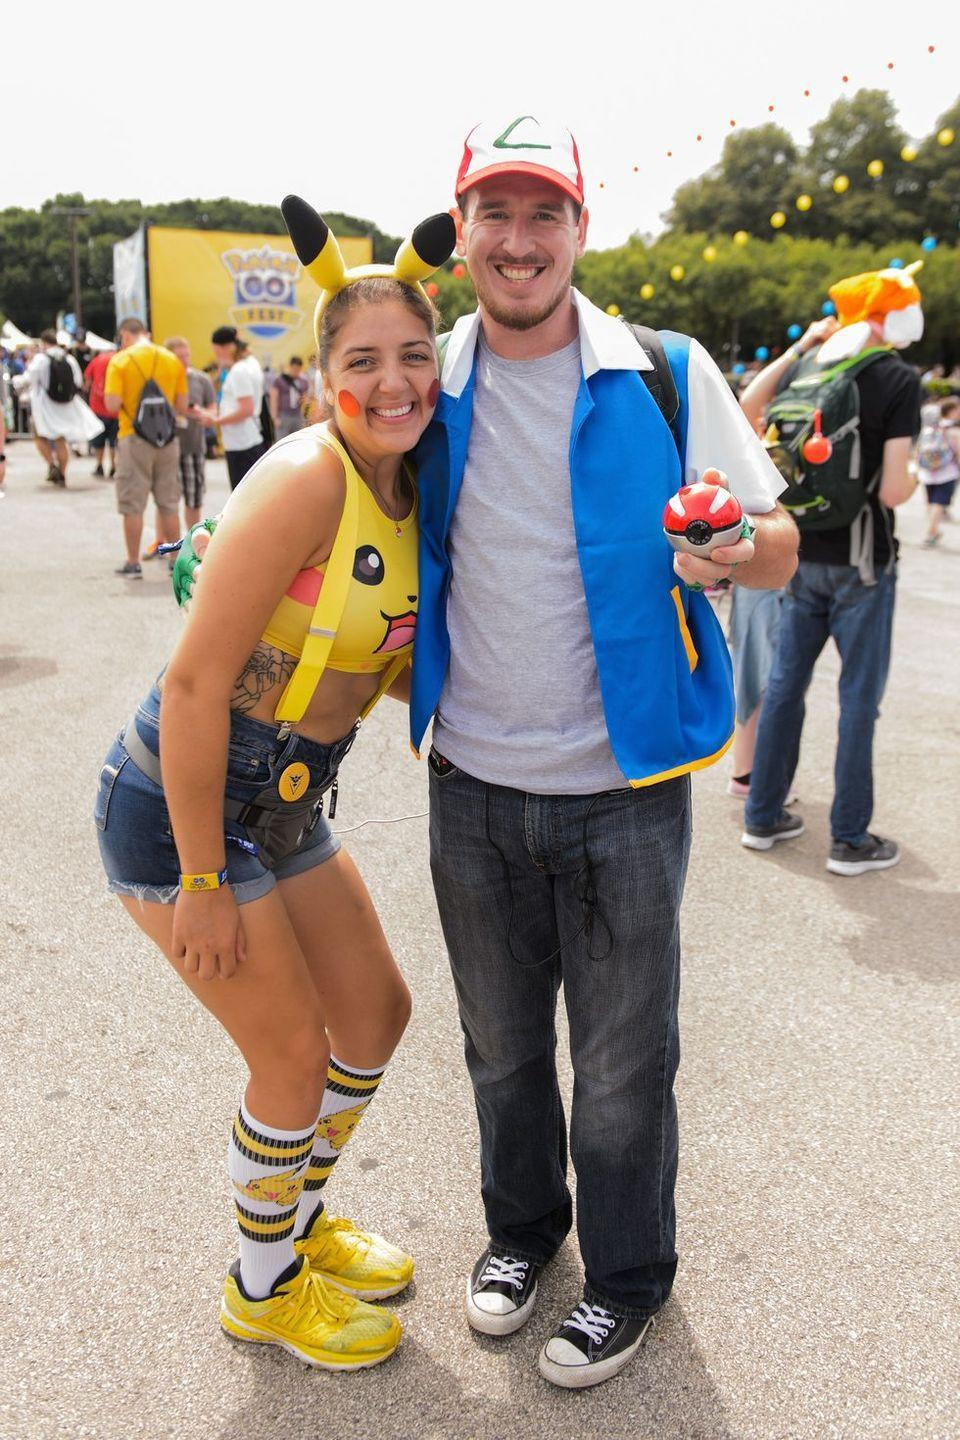 """<p>If you want your costume to be the very best, then you've got to go with Ash Ketchum and his adorable sidekick Pikachu from <em>Pokémon</em>. </p><p><a class=""""link rapid-noclick-resp"""" href=""""https://www.amazon.com/Pok%C3%A9mon-Pikachu-Plush-Headband-Halloween/dp/B07HPF7K75?tag=syn-yahoo-20&ascsubtag=%5Bartid%7C10070.g.2683%5Bsrc%7Cyahoo-us"""" rel=""""nofollow noopener"""" target=""""_blank"""" data-ylk=""""slk:SHOP PIKACHU EARS"""">SHOP PIKACHU EARS</a></p><p><a class=""""link rapid-noclick-resp"""" href=""""https://www.amazon.com/Pok%C3%A9mon-Ketchum-Embroidered-Unisex-adult-One-size/dp/B01EPA1PU4?tag=syn-yahoo-20&ascsubtag=%5Bartid%7C10070.g.2683%5Bsrc%7Cyahoo-us"""" rel=""""nofollow noopener"""" target=""""_blank"""" data-ylk=""""slk:SHOP RED HAT"""">SHOP RED HAT</a></p>"""